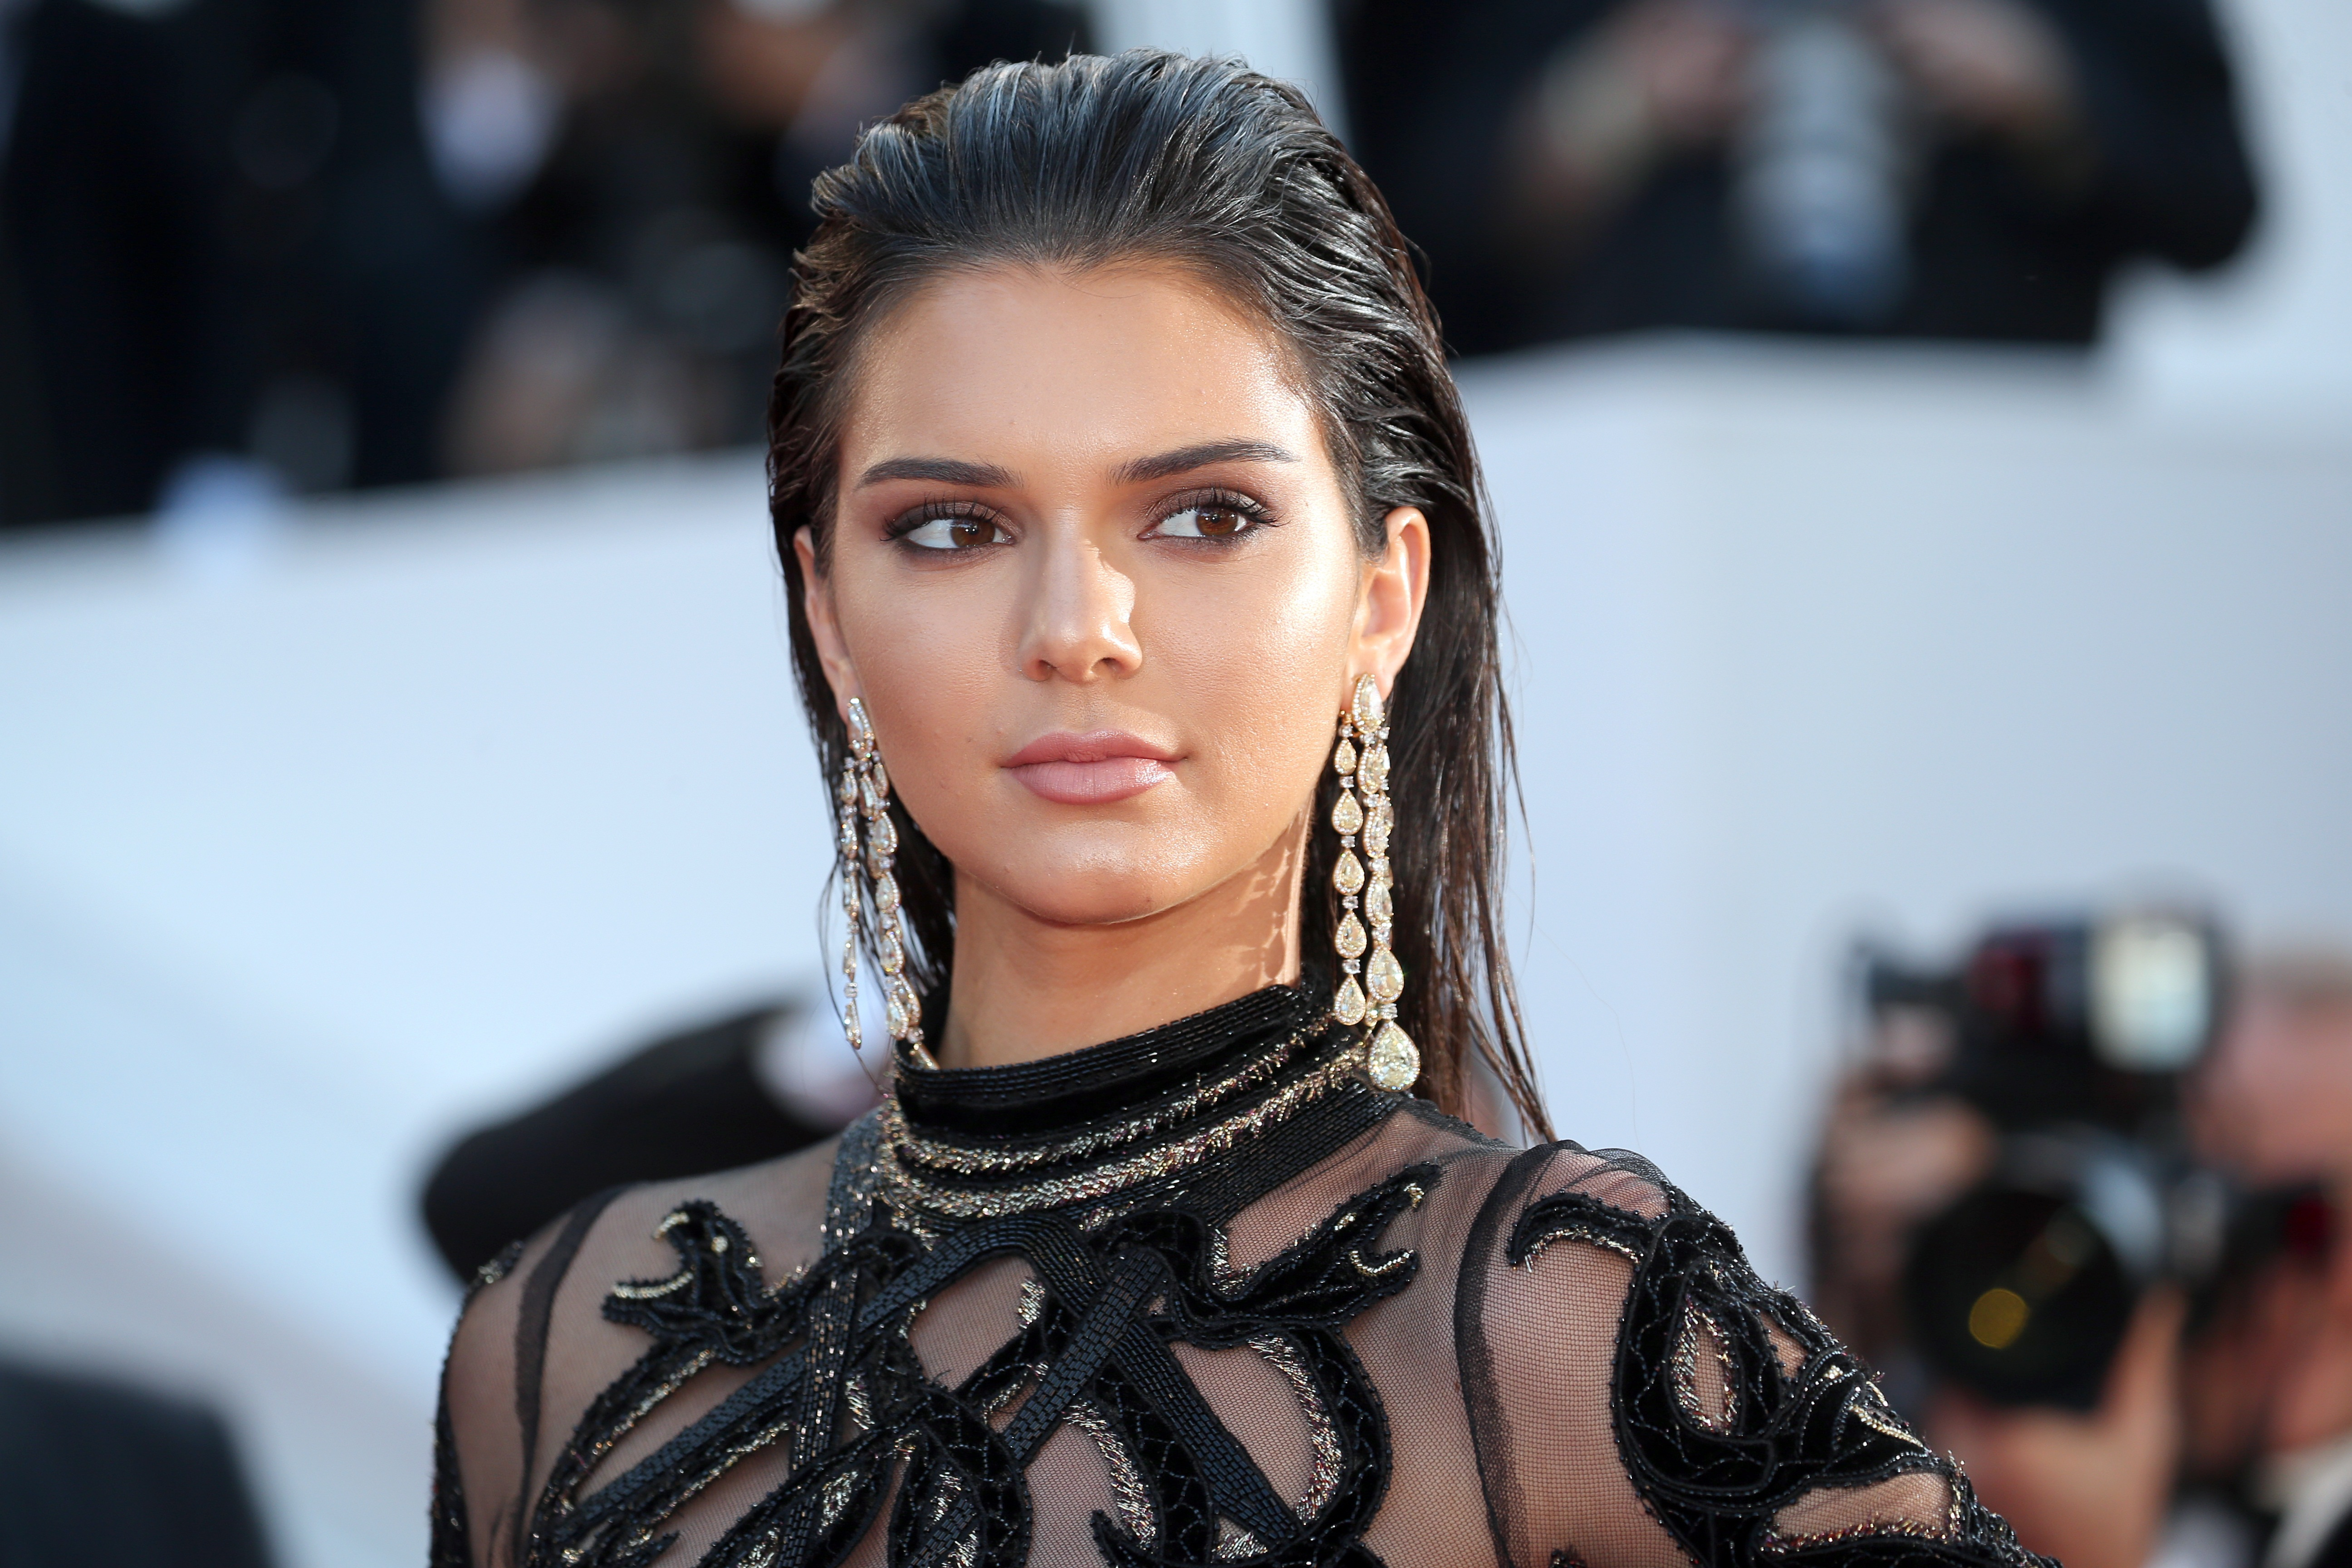 You probably haven't noticed that Kendall Jenner wears this type of shoes with EVERYTHING